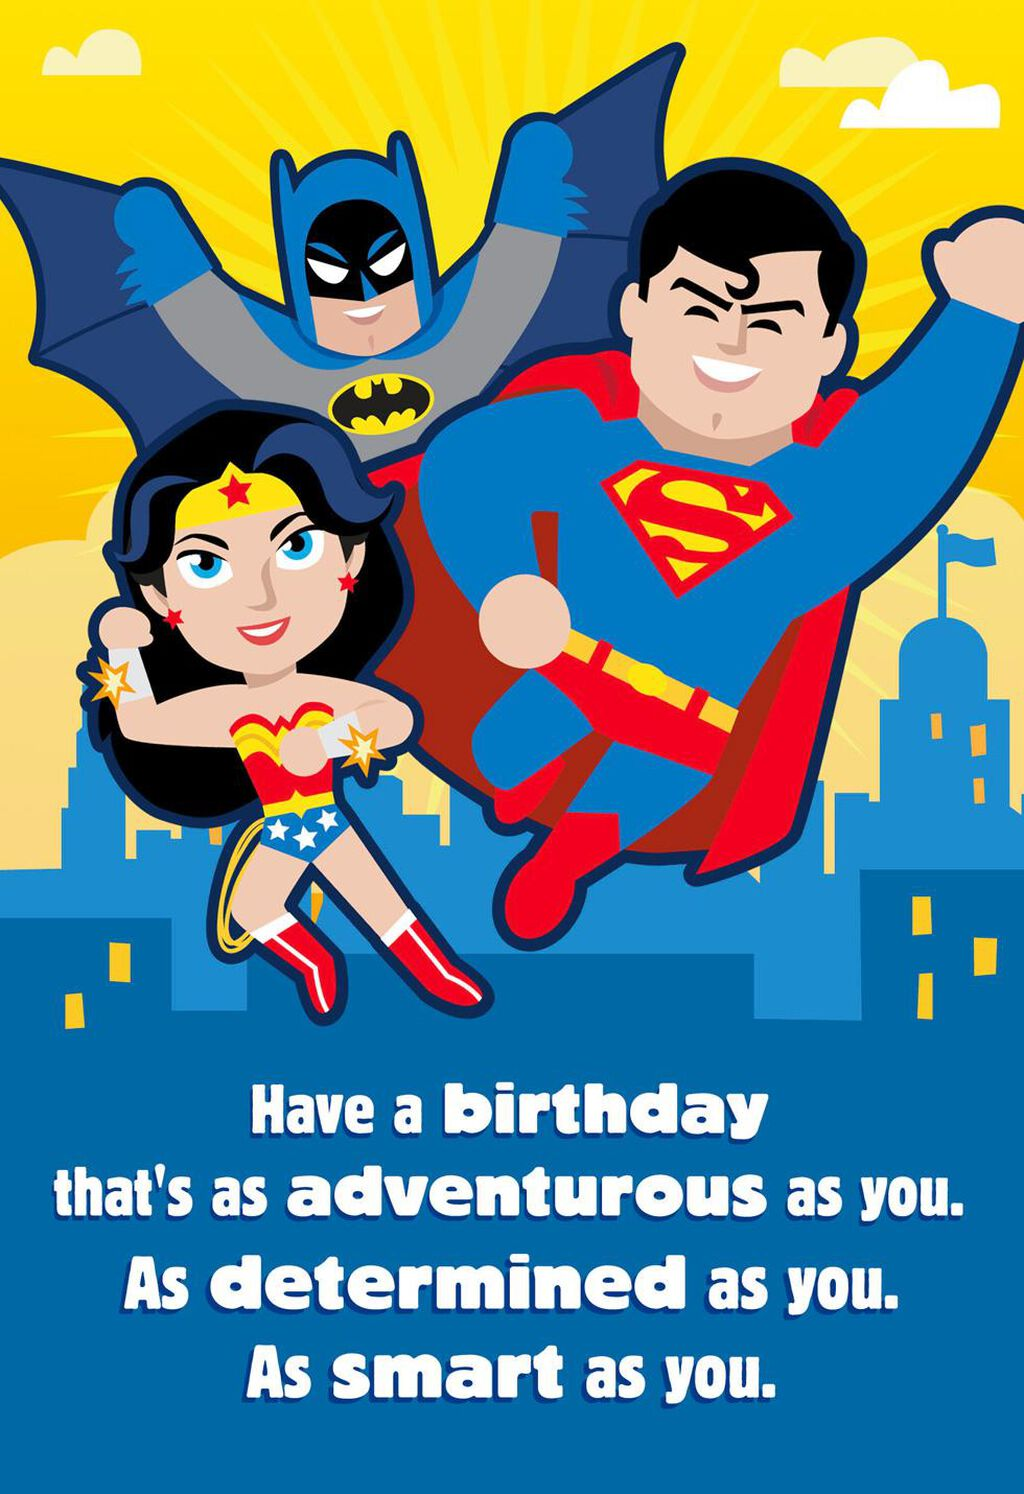 Justice LeagueTM As Adventurous You Musical Birthday Card